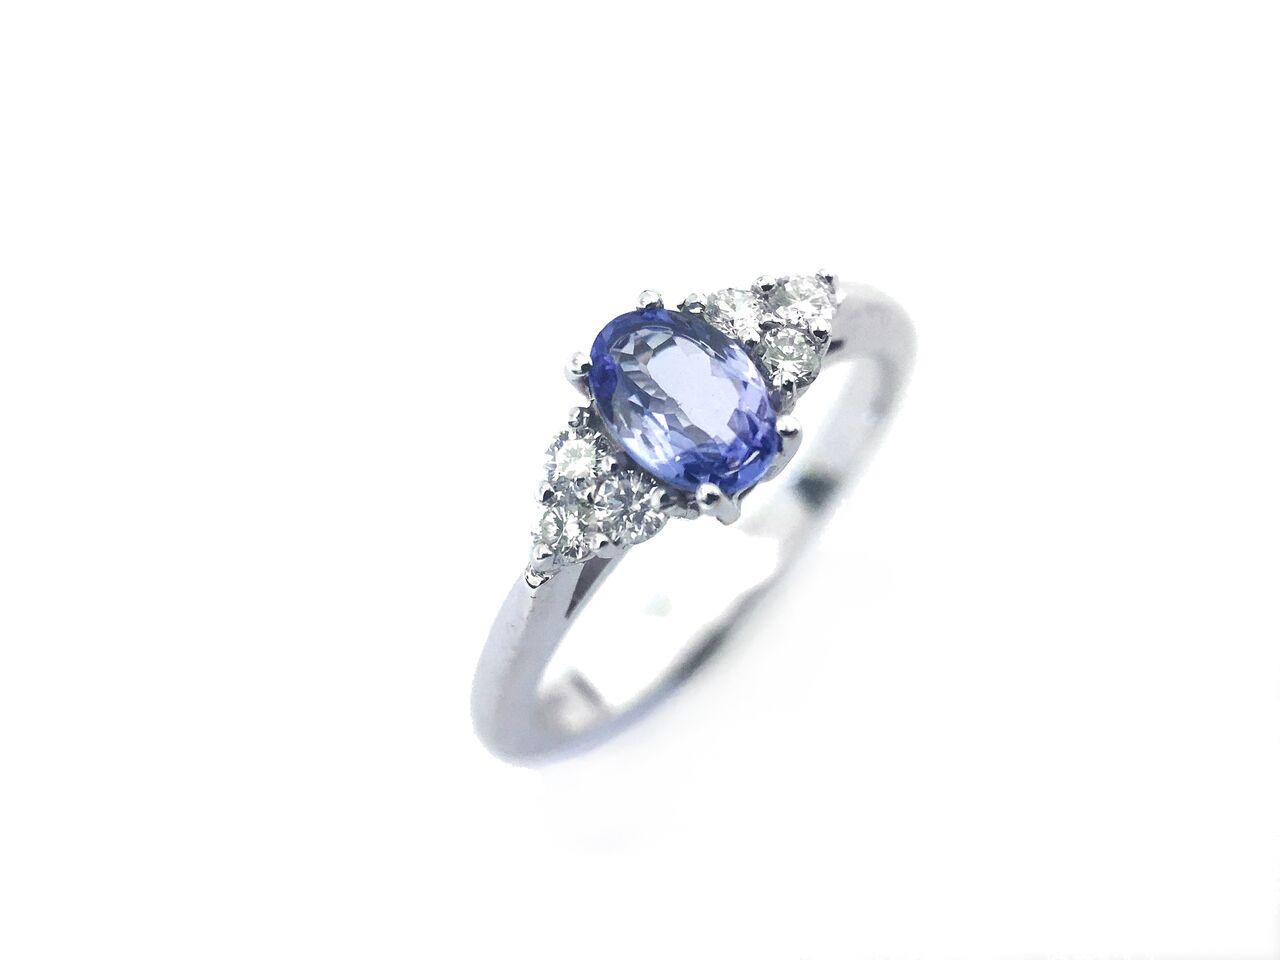 lance diamond image ring white engagement stone james tanzanite gold coloured rings